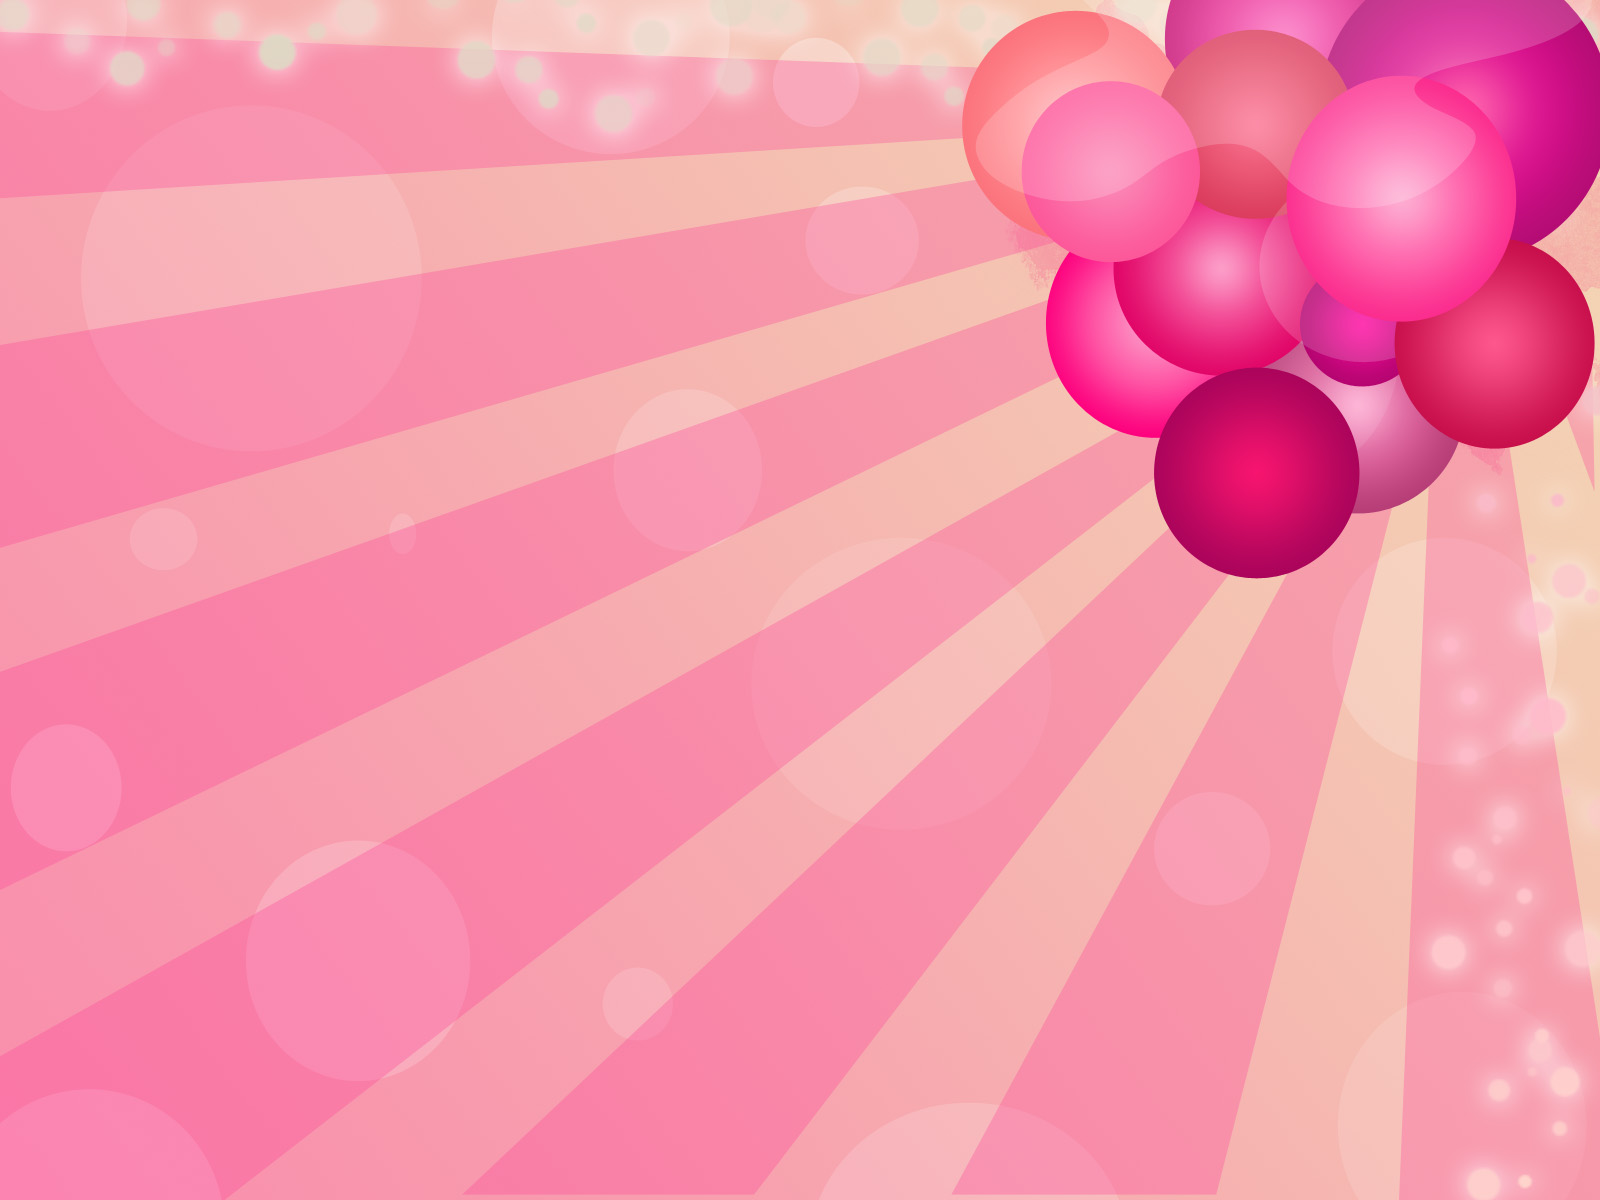 Wallpapers Pink Backgrounds Top Collections of Pictures Images 1600x1200